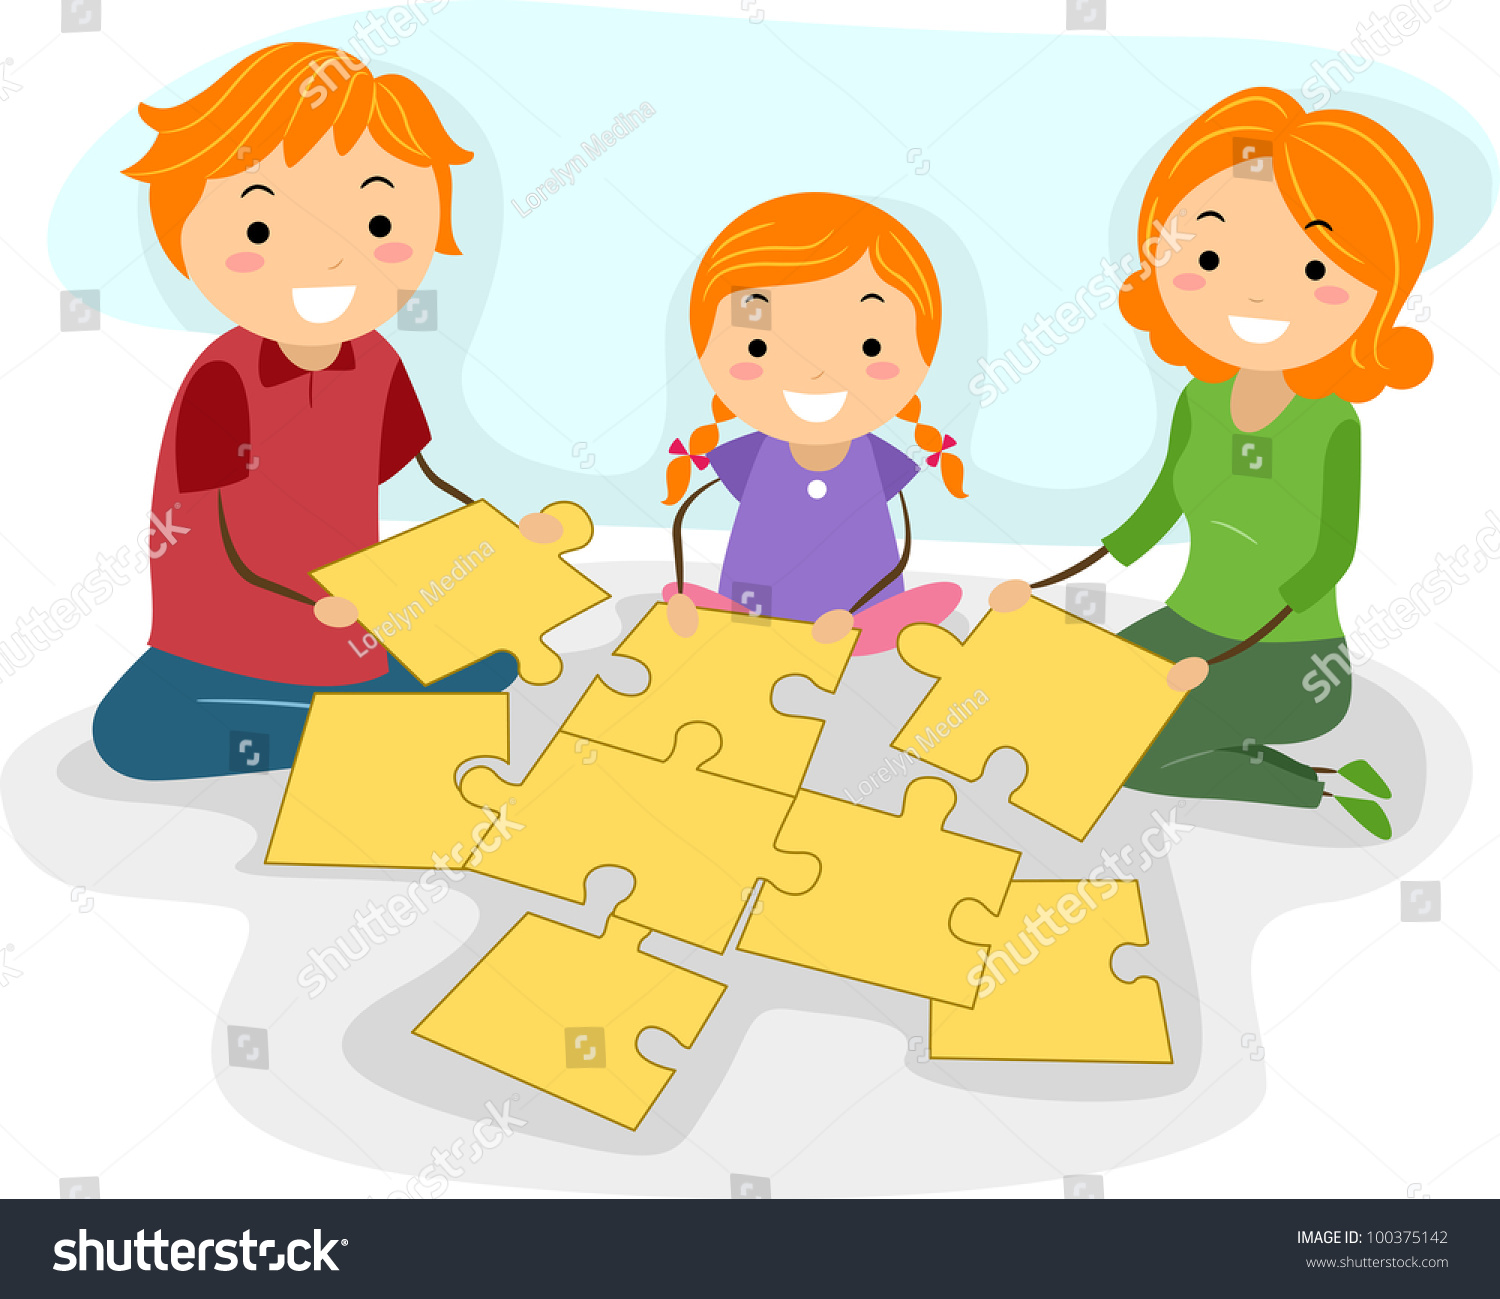 Illustration Of A Family Solving Jigsaw Puzzle Together